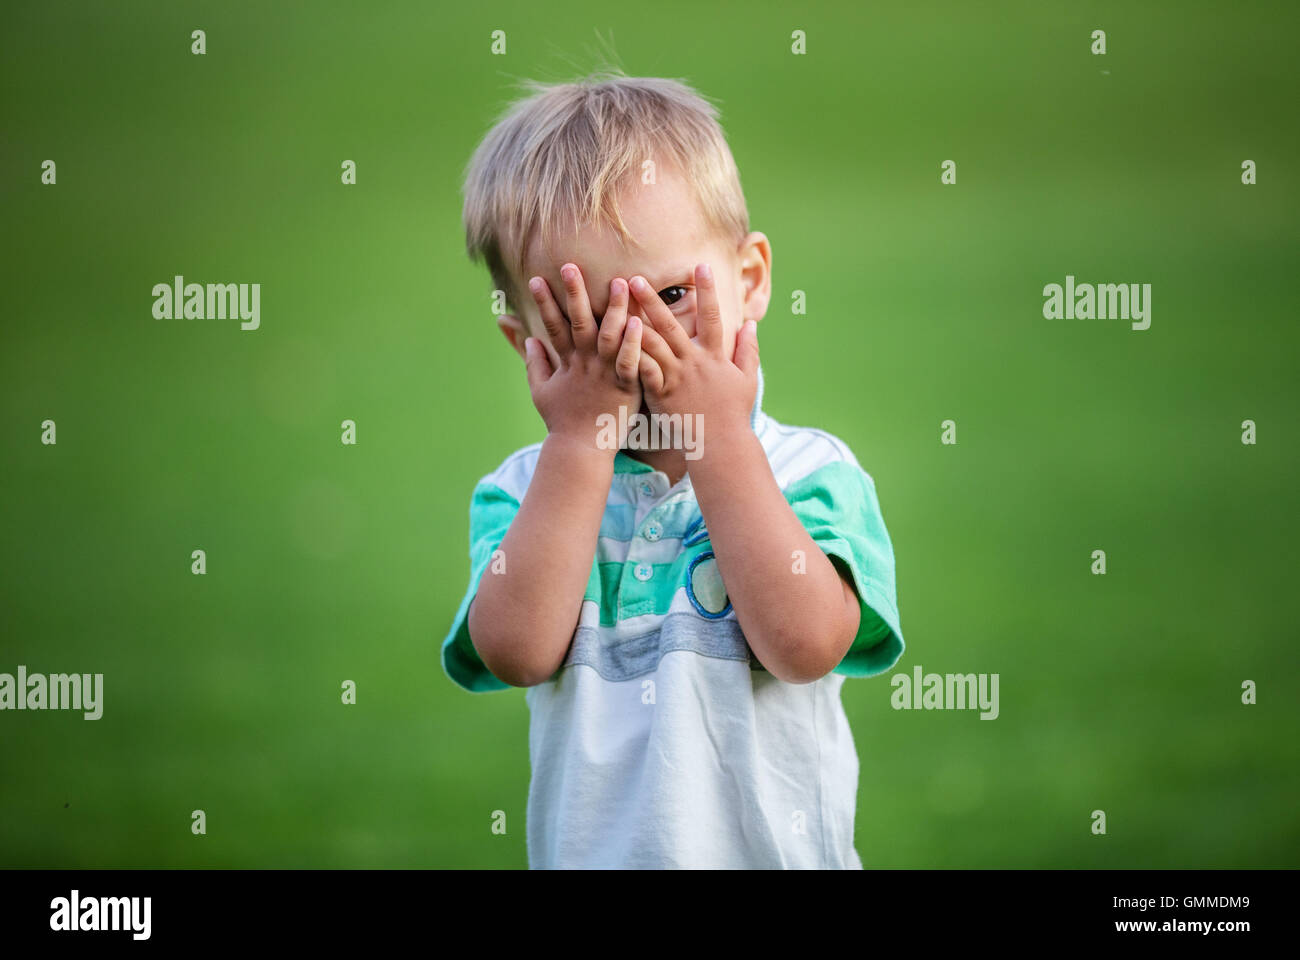 Little boy playing peek-a-boo outdoors - Stock Image